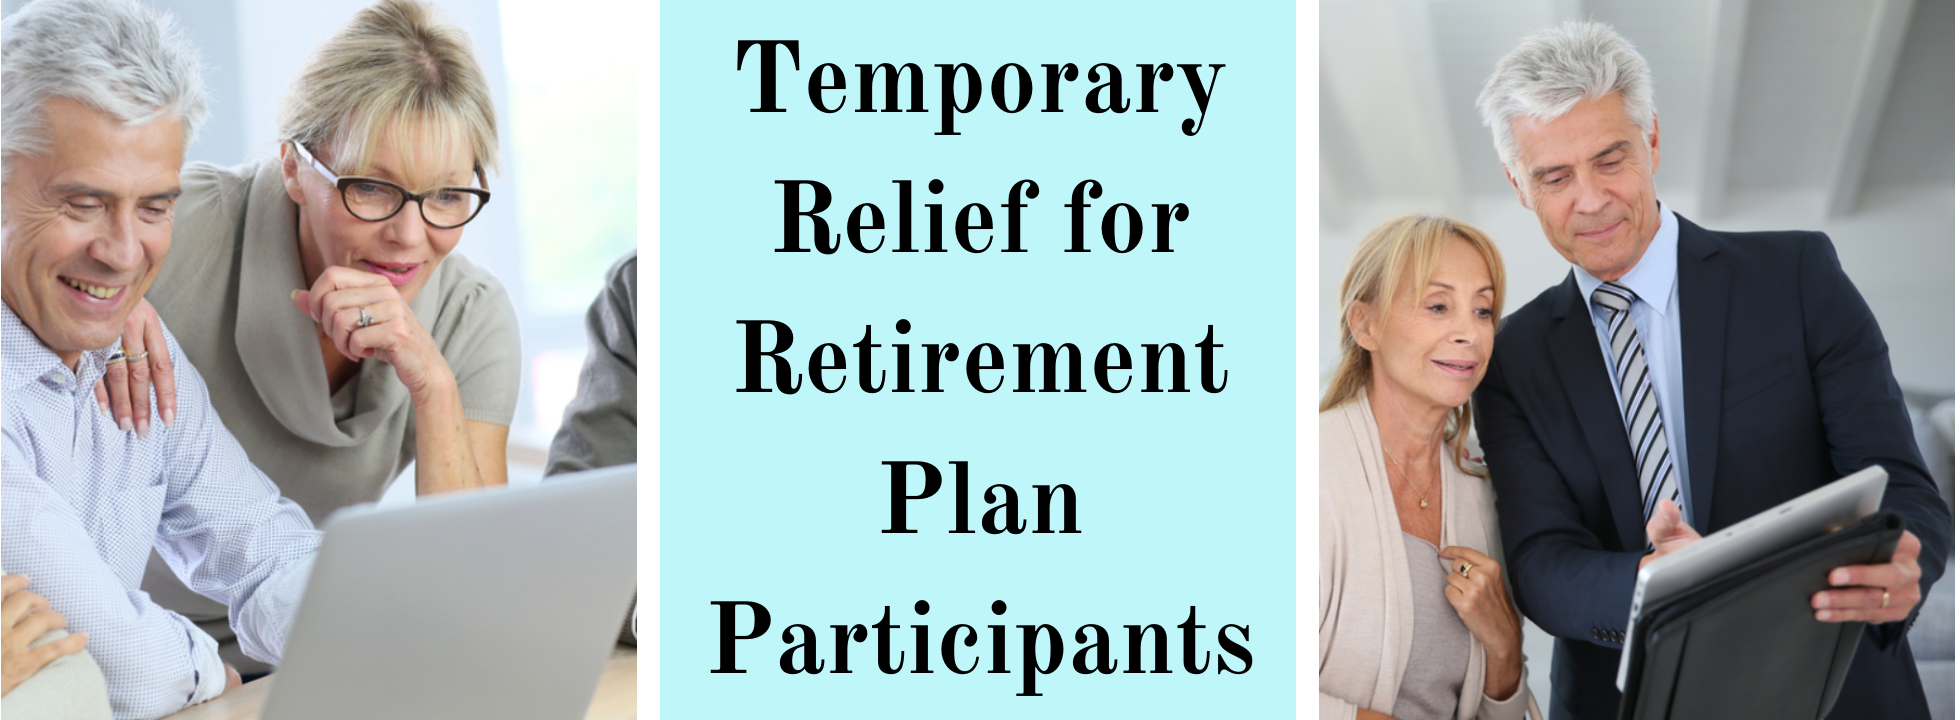 Temporary Relief for Retirement Plan Participants